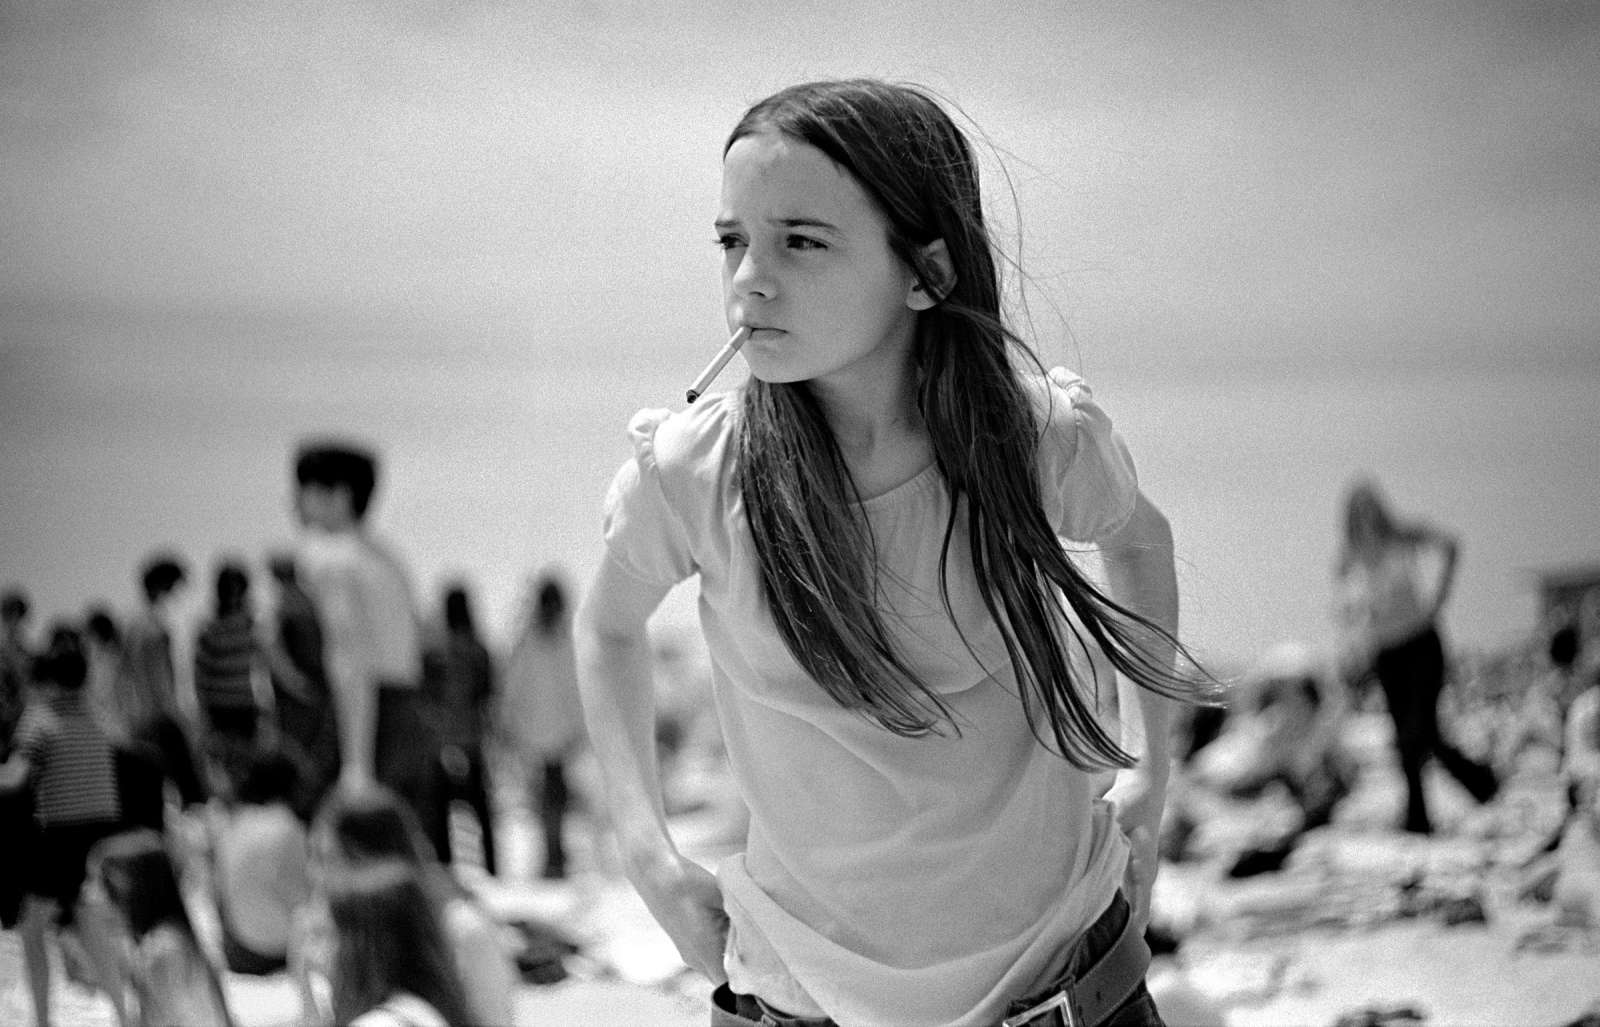 aCurator reviews Joseph Szabo